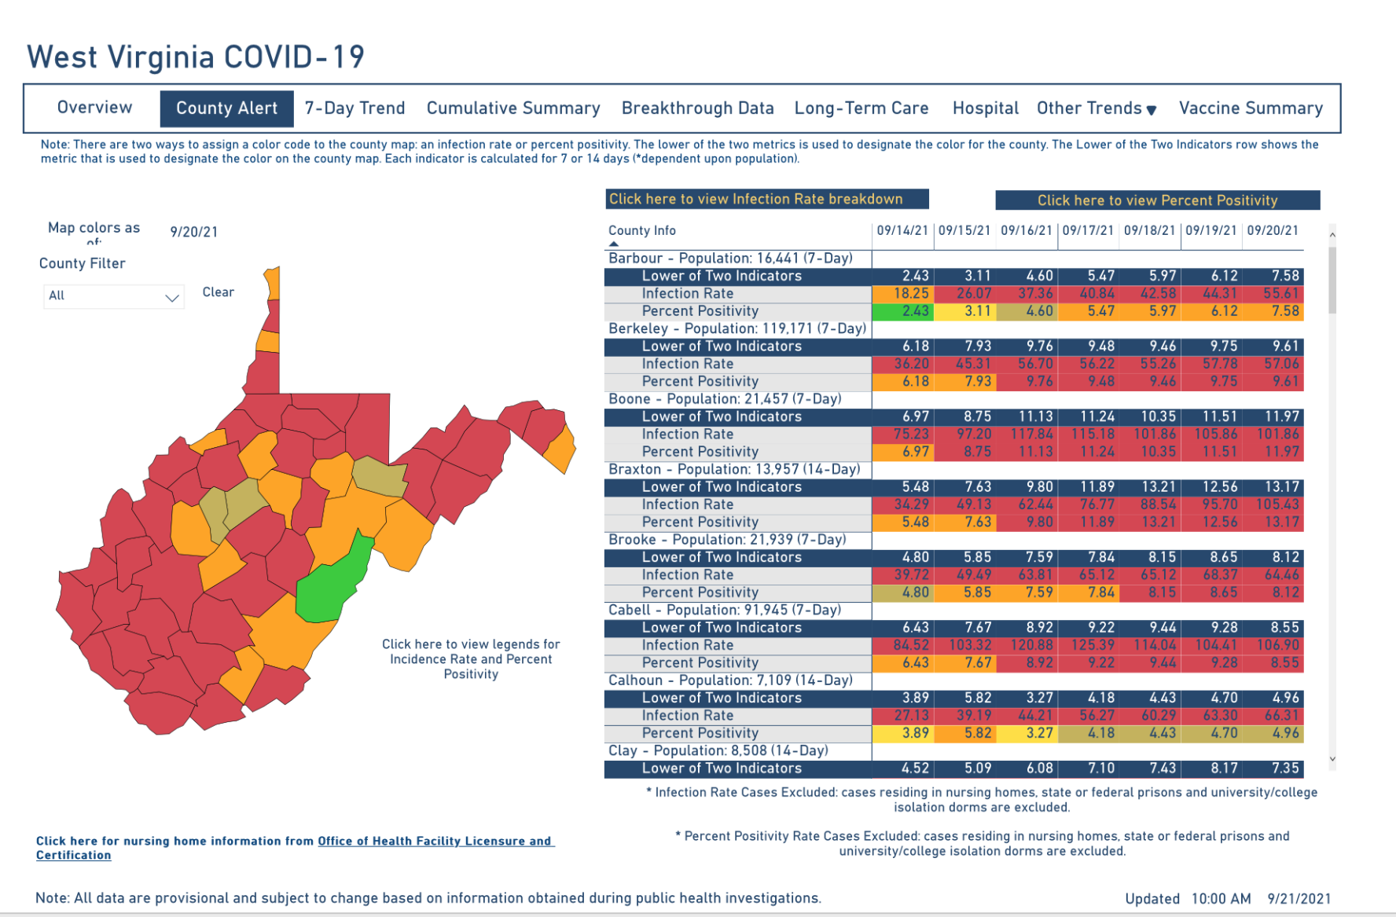 West Virginia COVID-19 County Alert Map, 9-21-2021